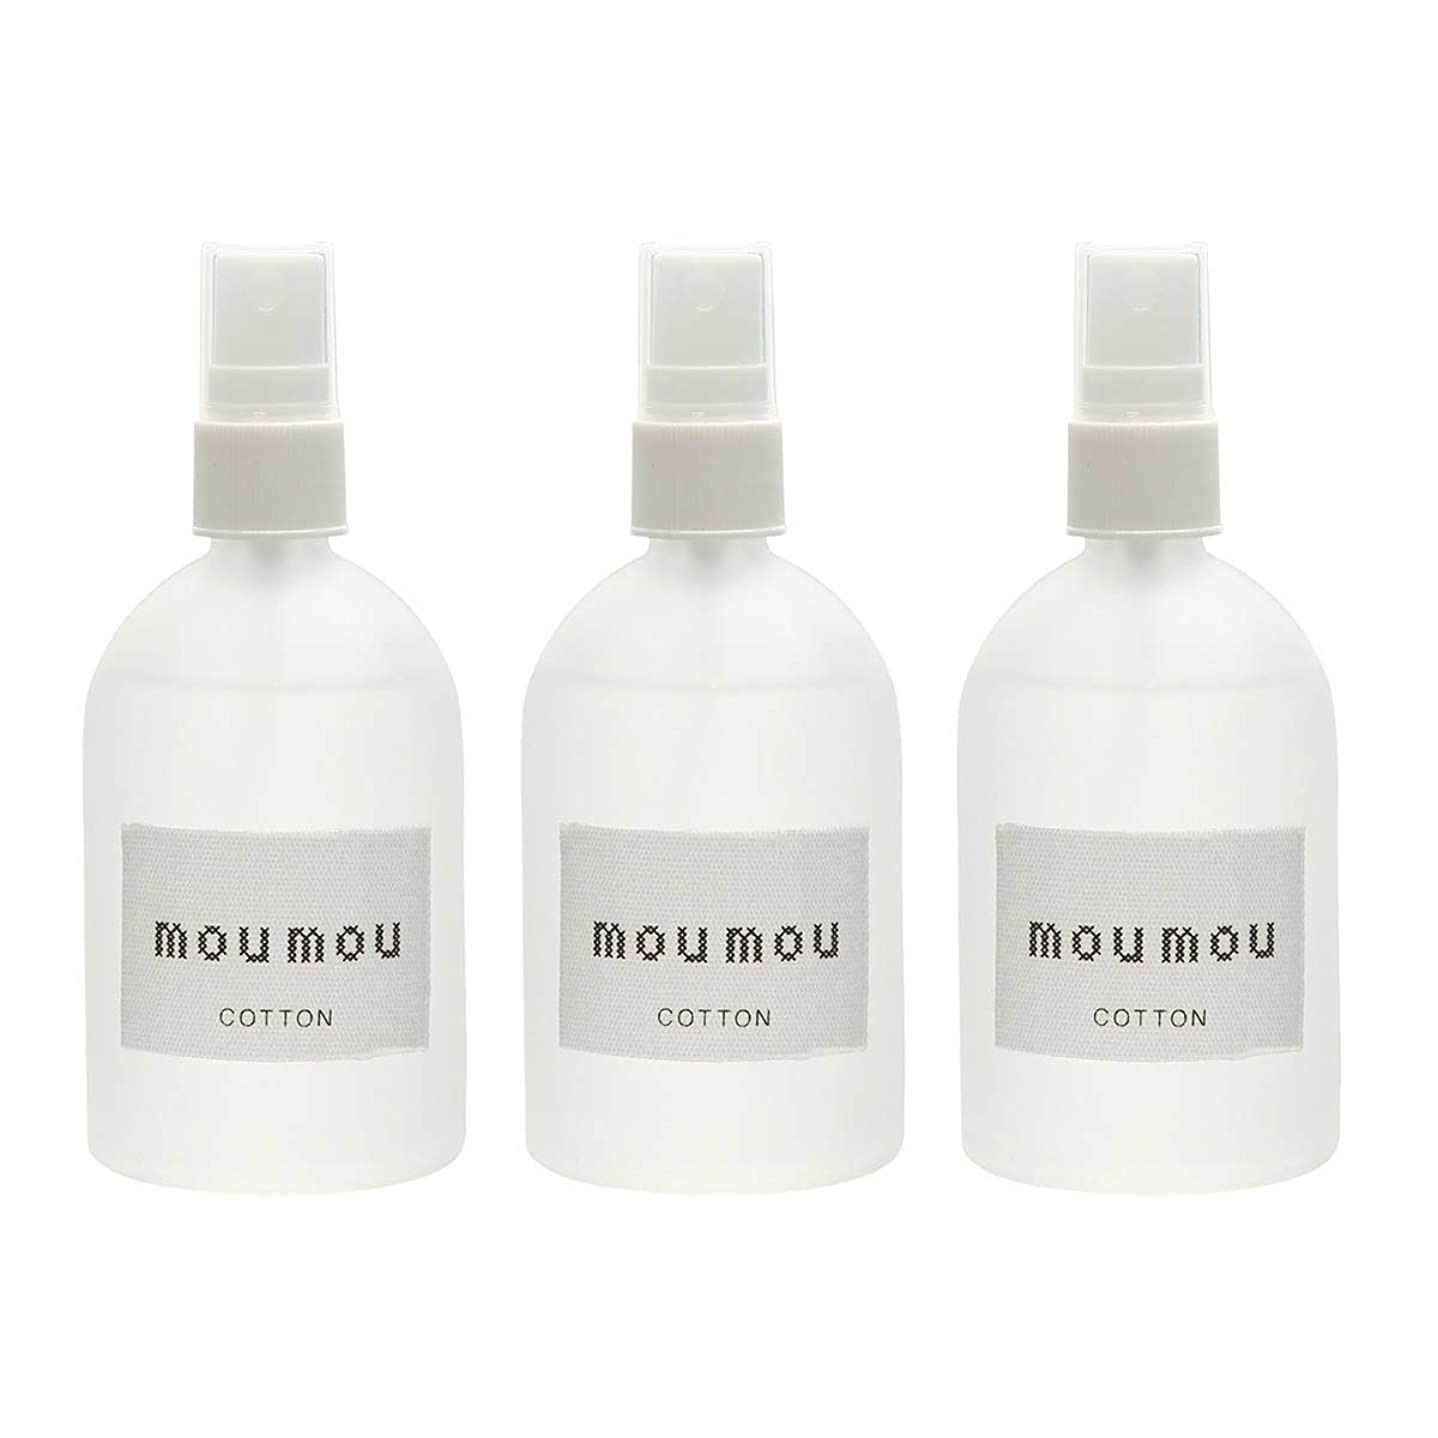 MOU MOU ピローミスト コットン 100mL 3個セット